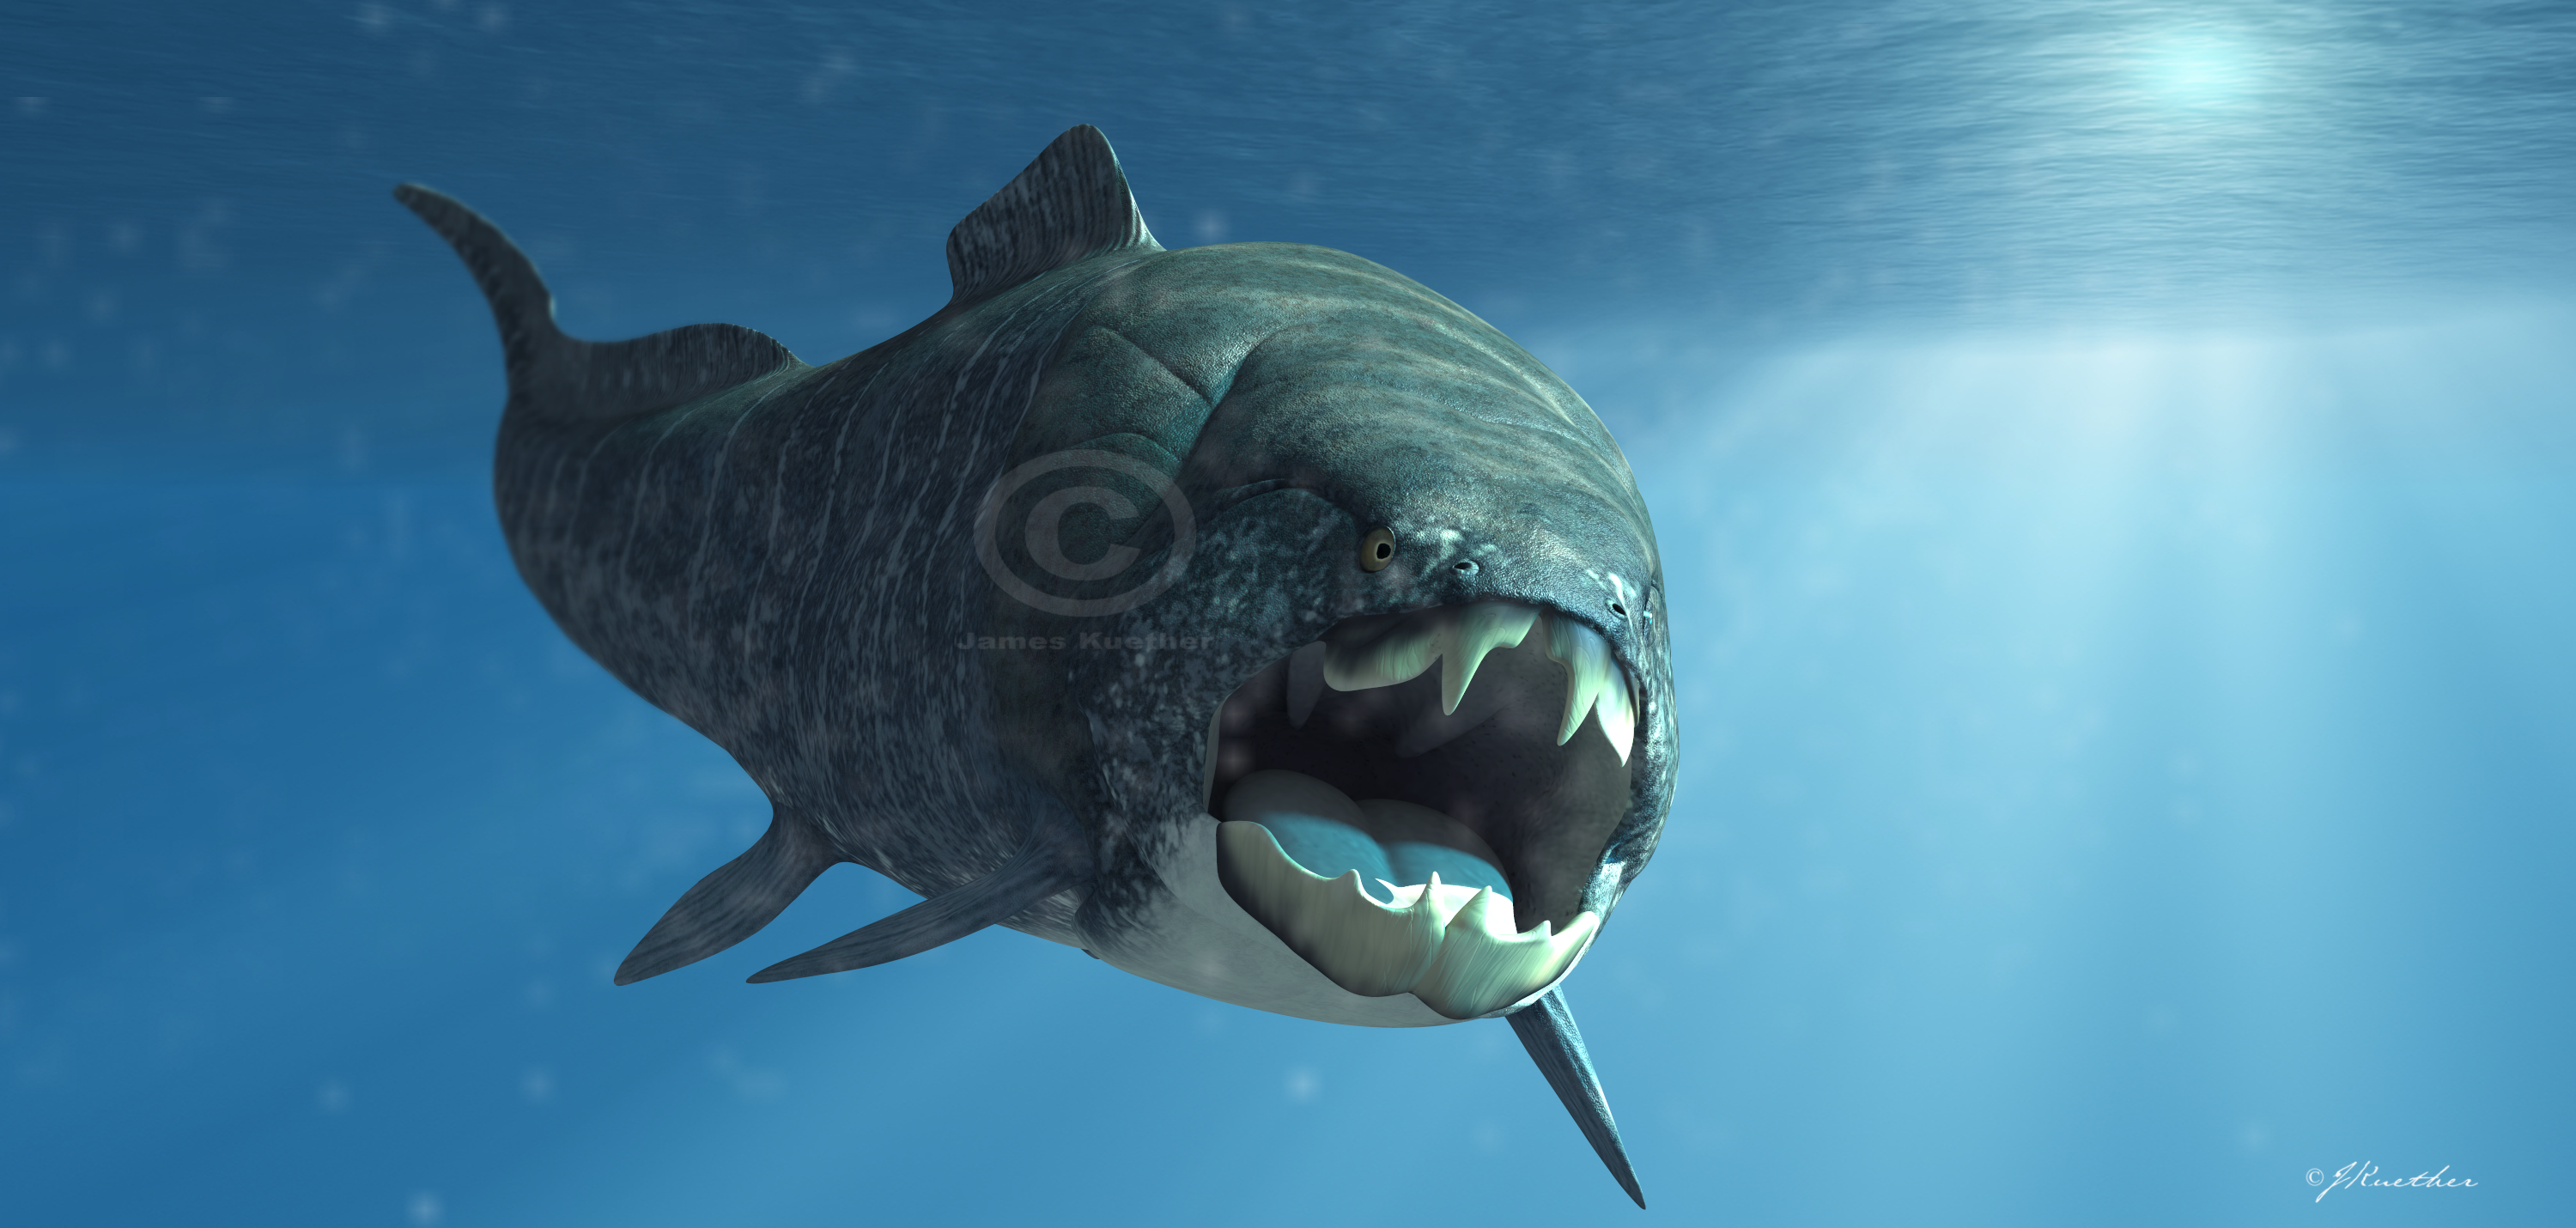 Dunkleosteus by PaleoGuy on DeviantArt